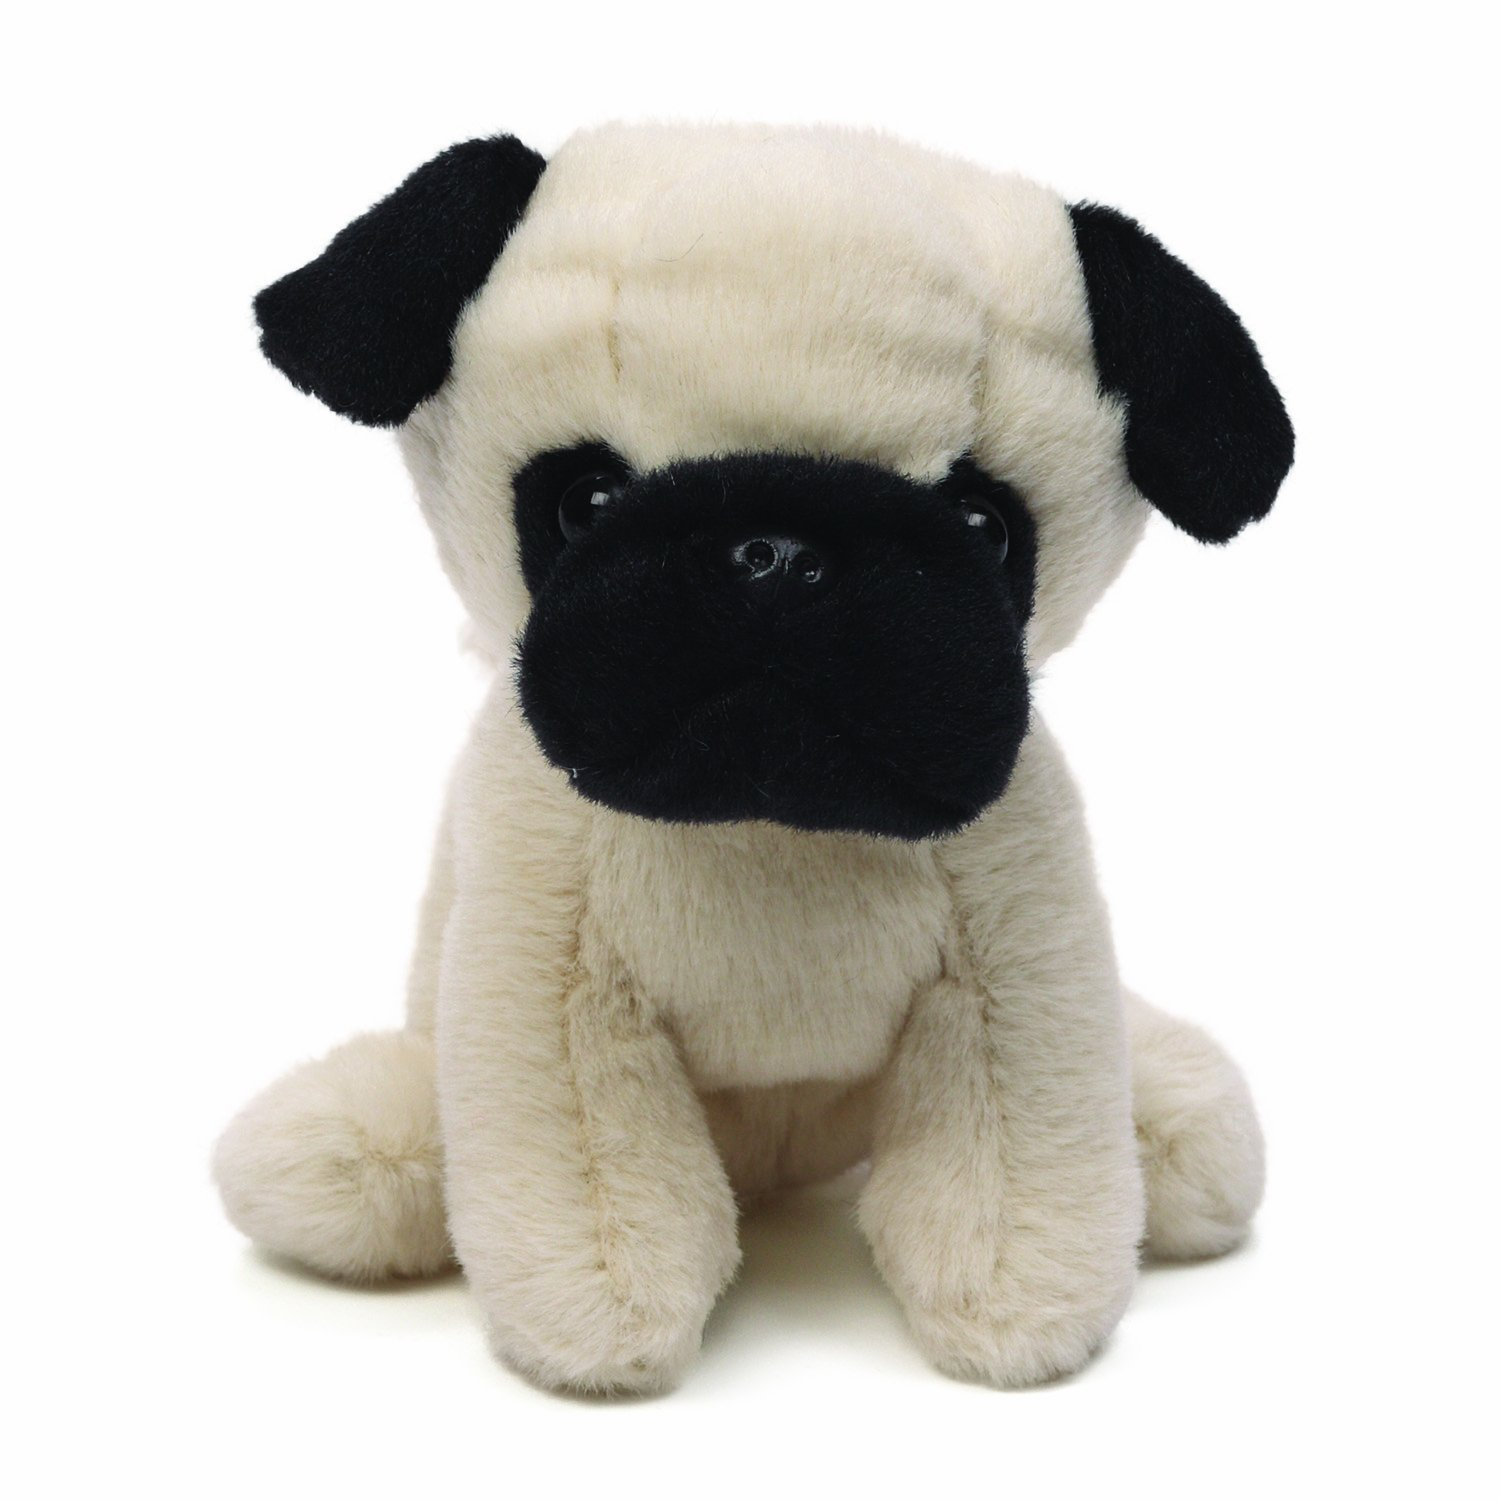 amazon com gund shmossy pug dog stuffed animal toys u0026 games